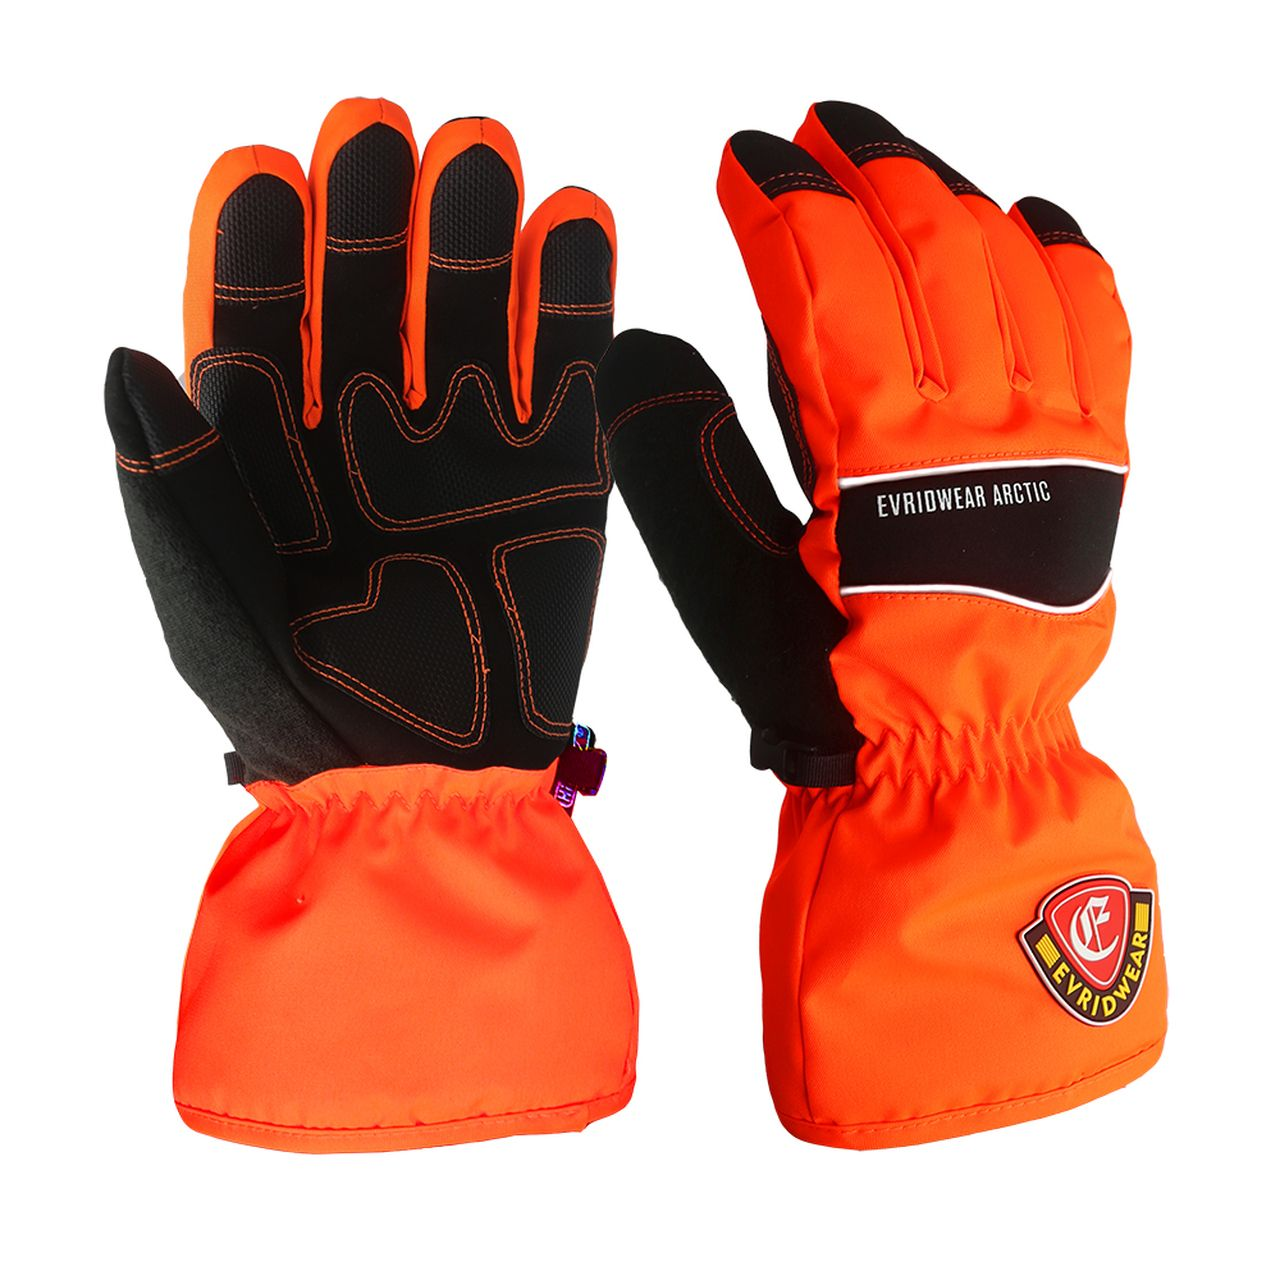 Top 10 Best Winter Gloves For Extreme Cold Best Top Ten Ever Best Winter Gloves Warmest Winter Gloves Gloves Winter